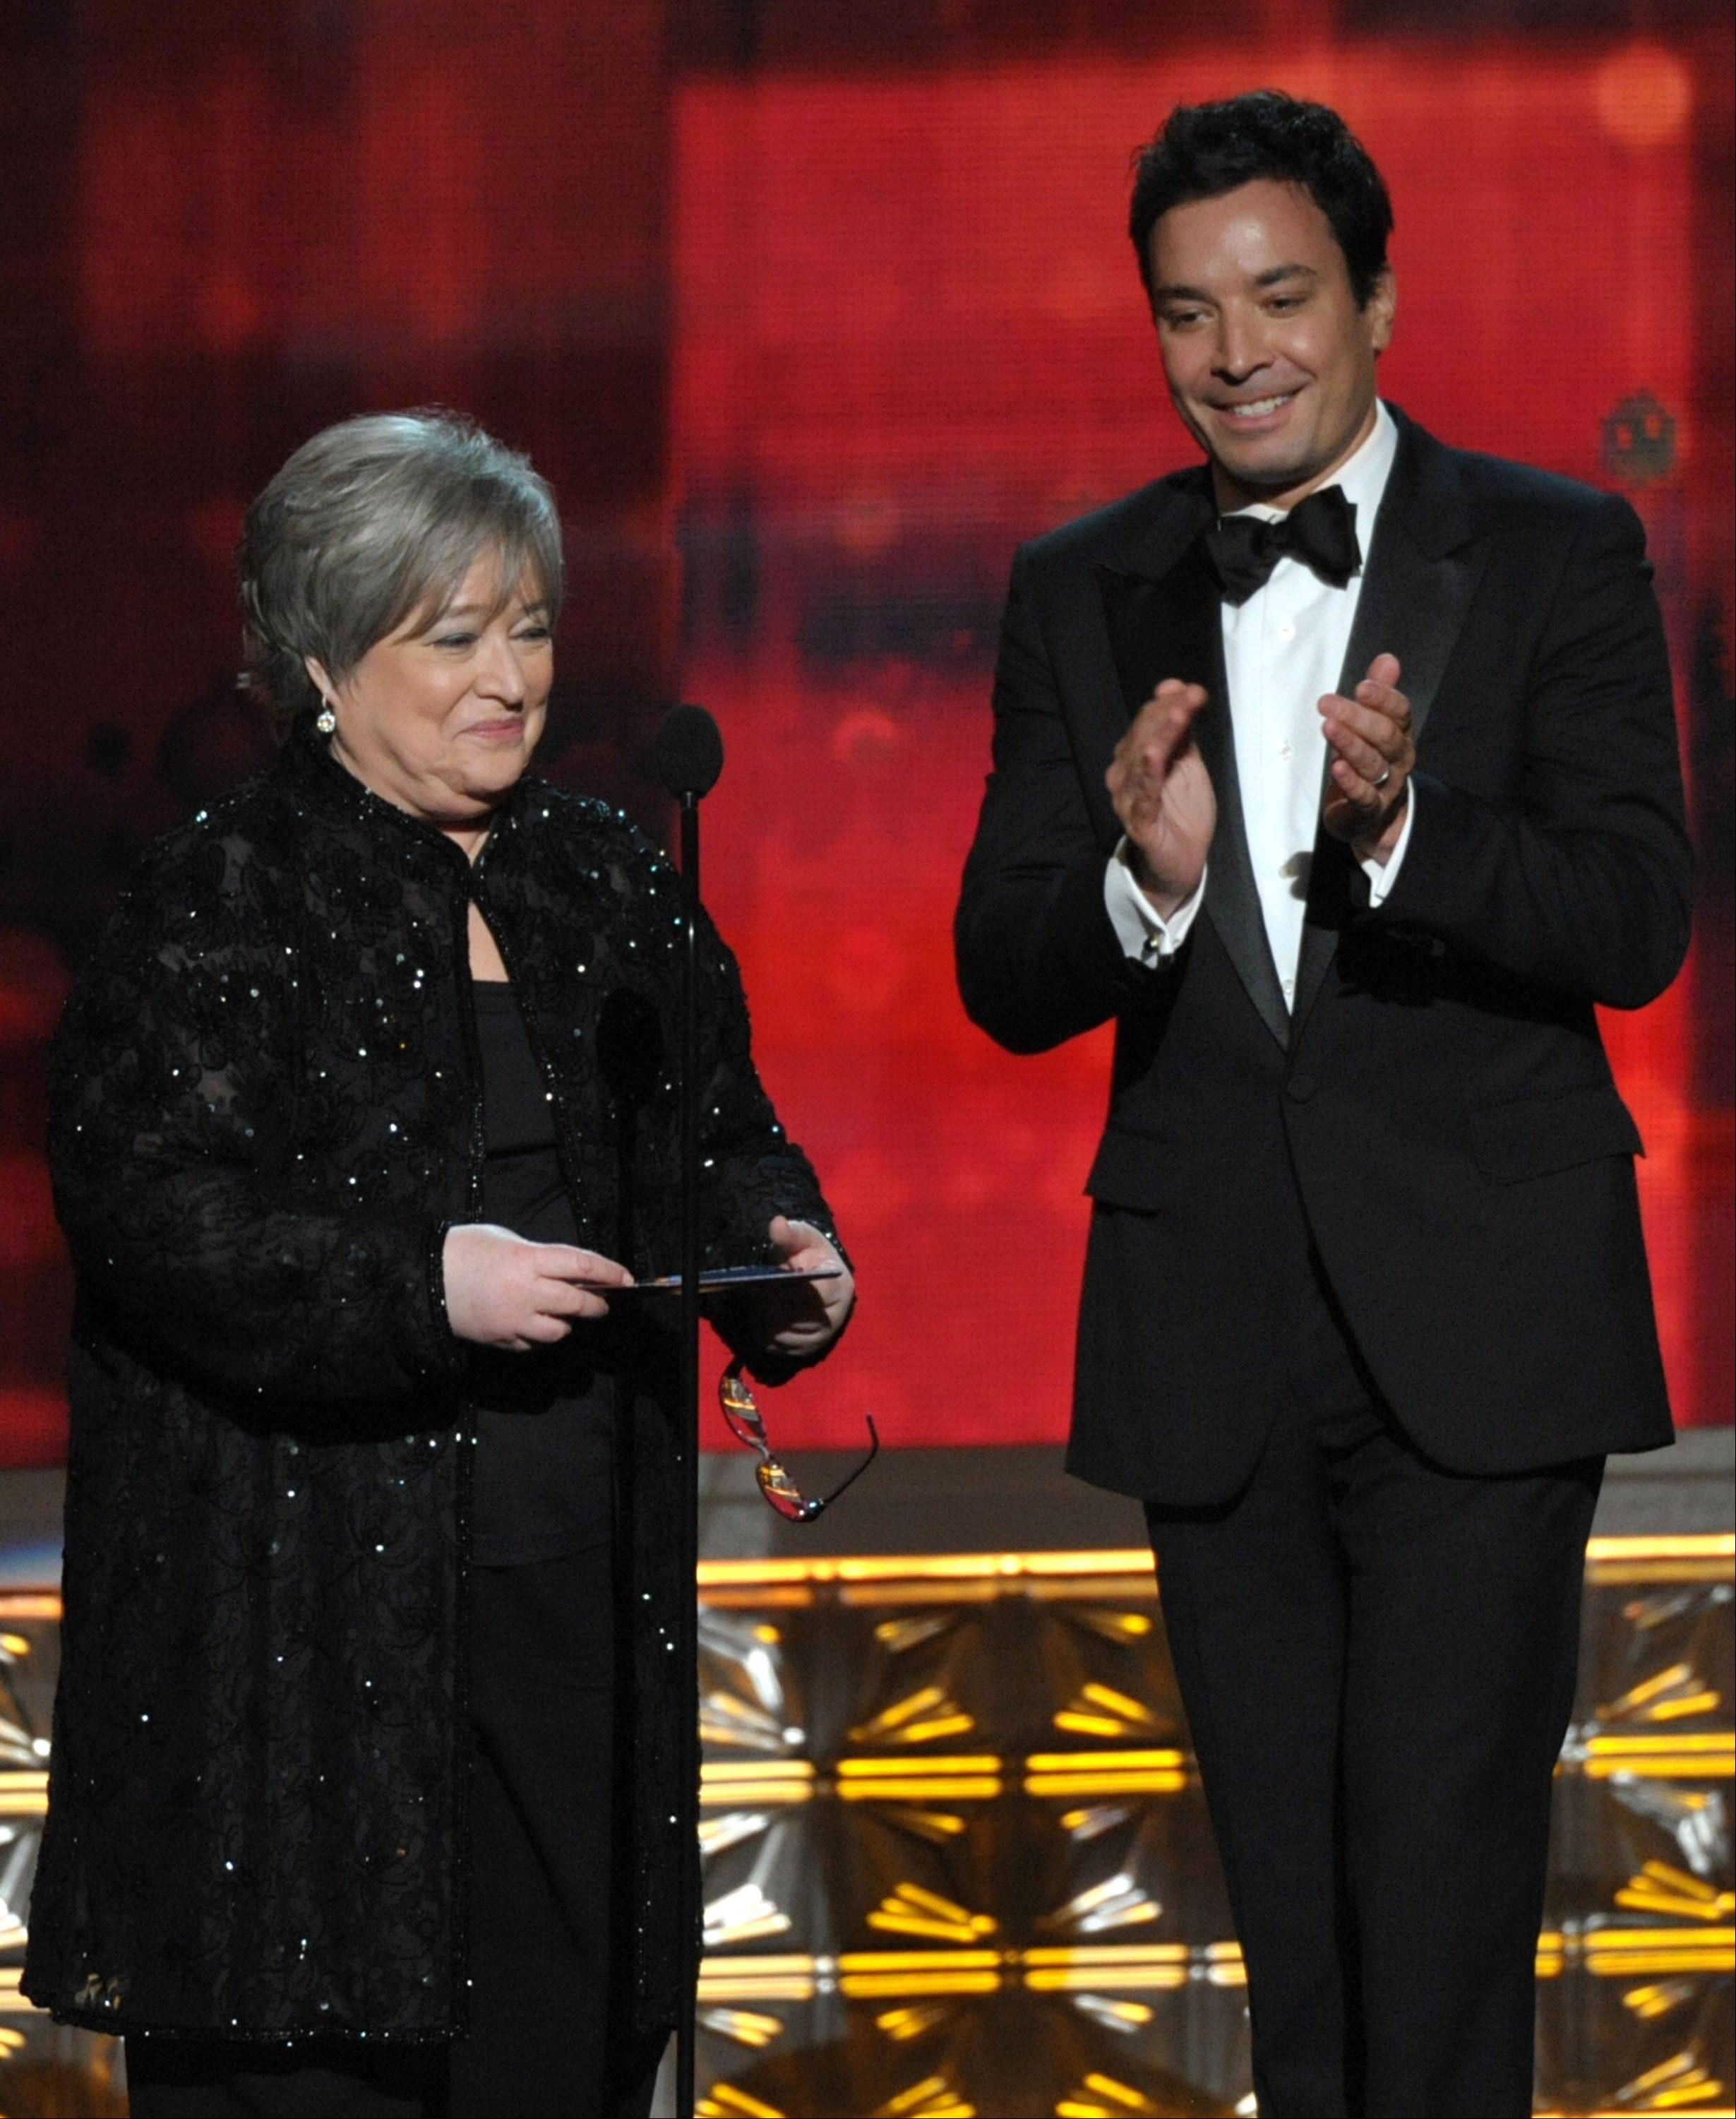 An ailing Kathy Bates, left, and Jimmy Fallon present an award onstage at the 64th Primetime Emmy Awards.